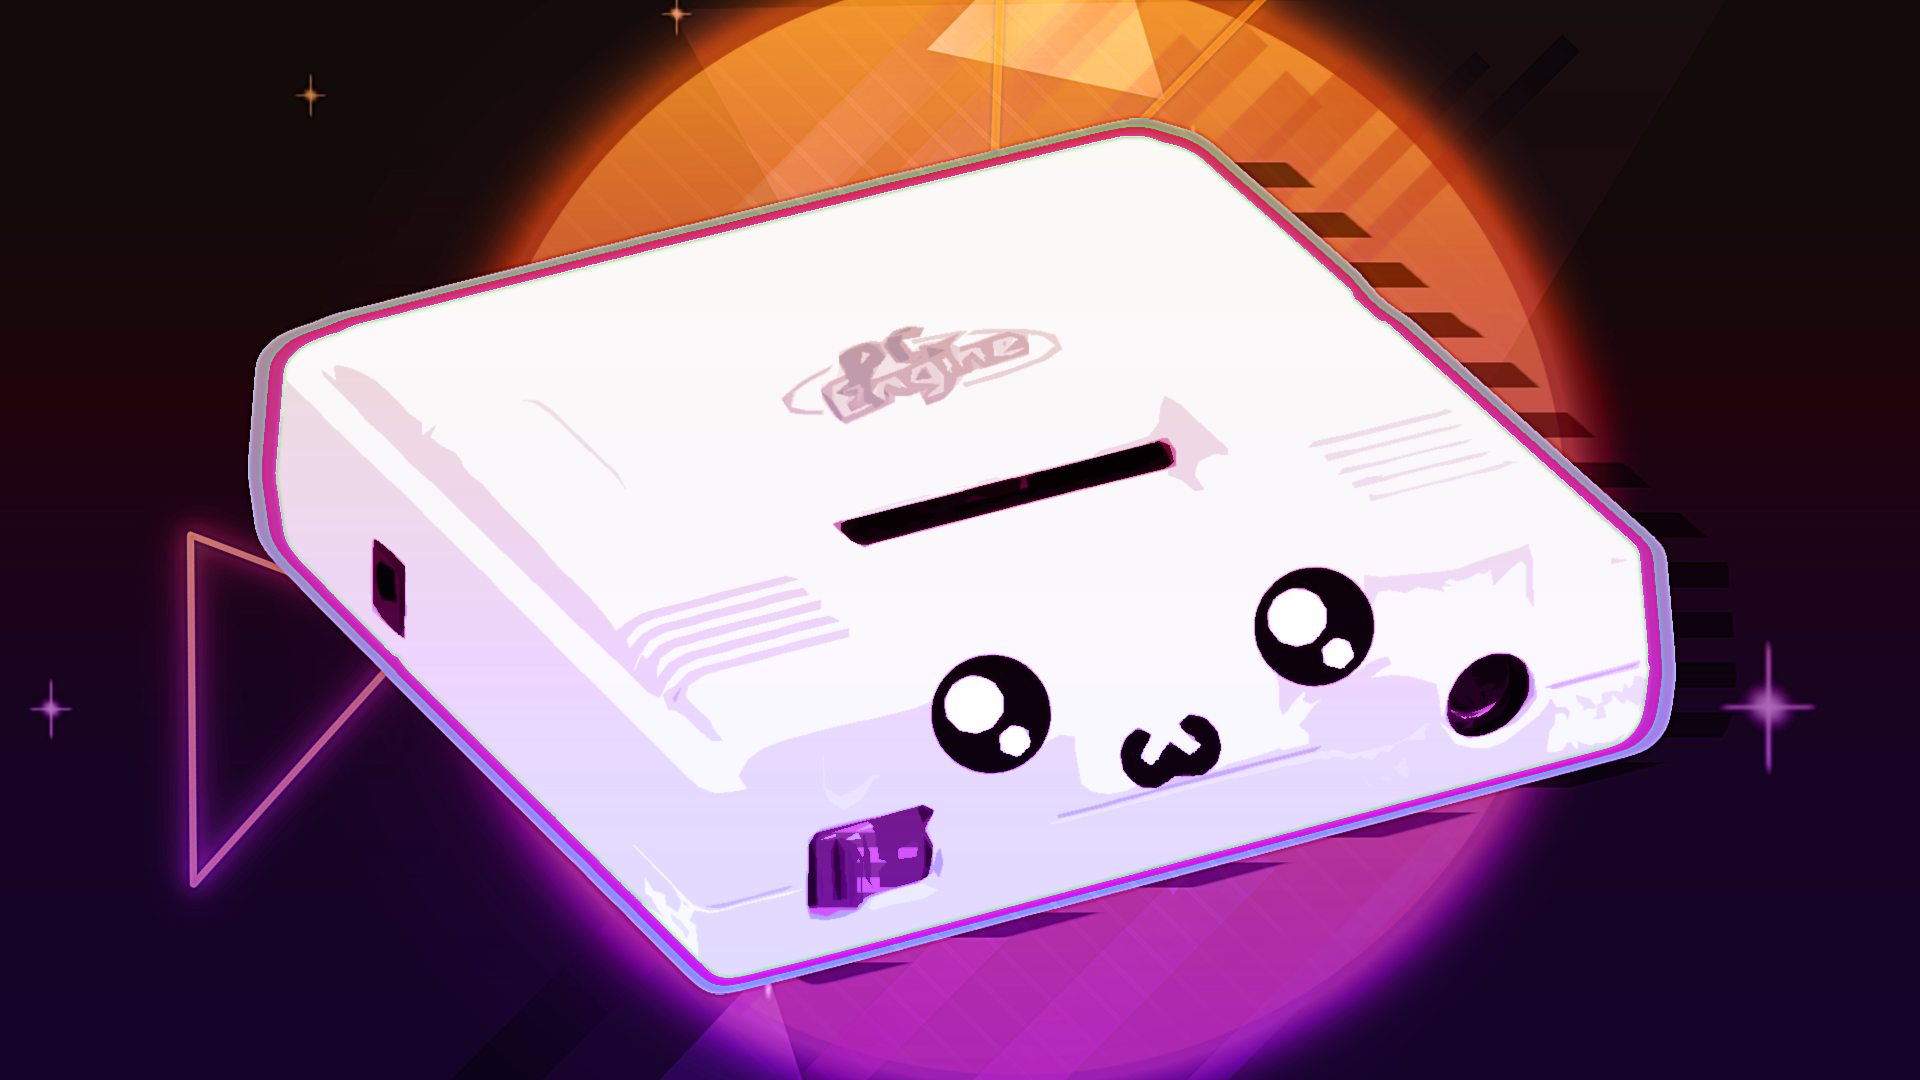 PC Engine Cutest Console Ever